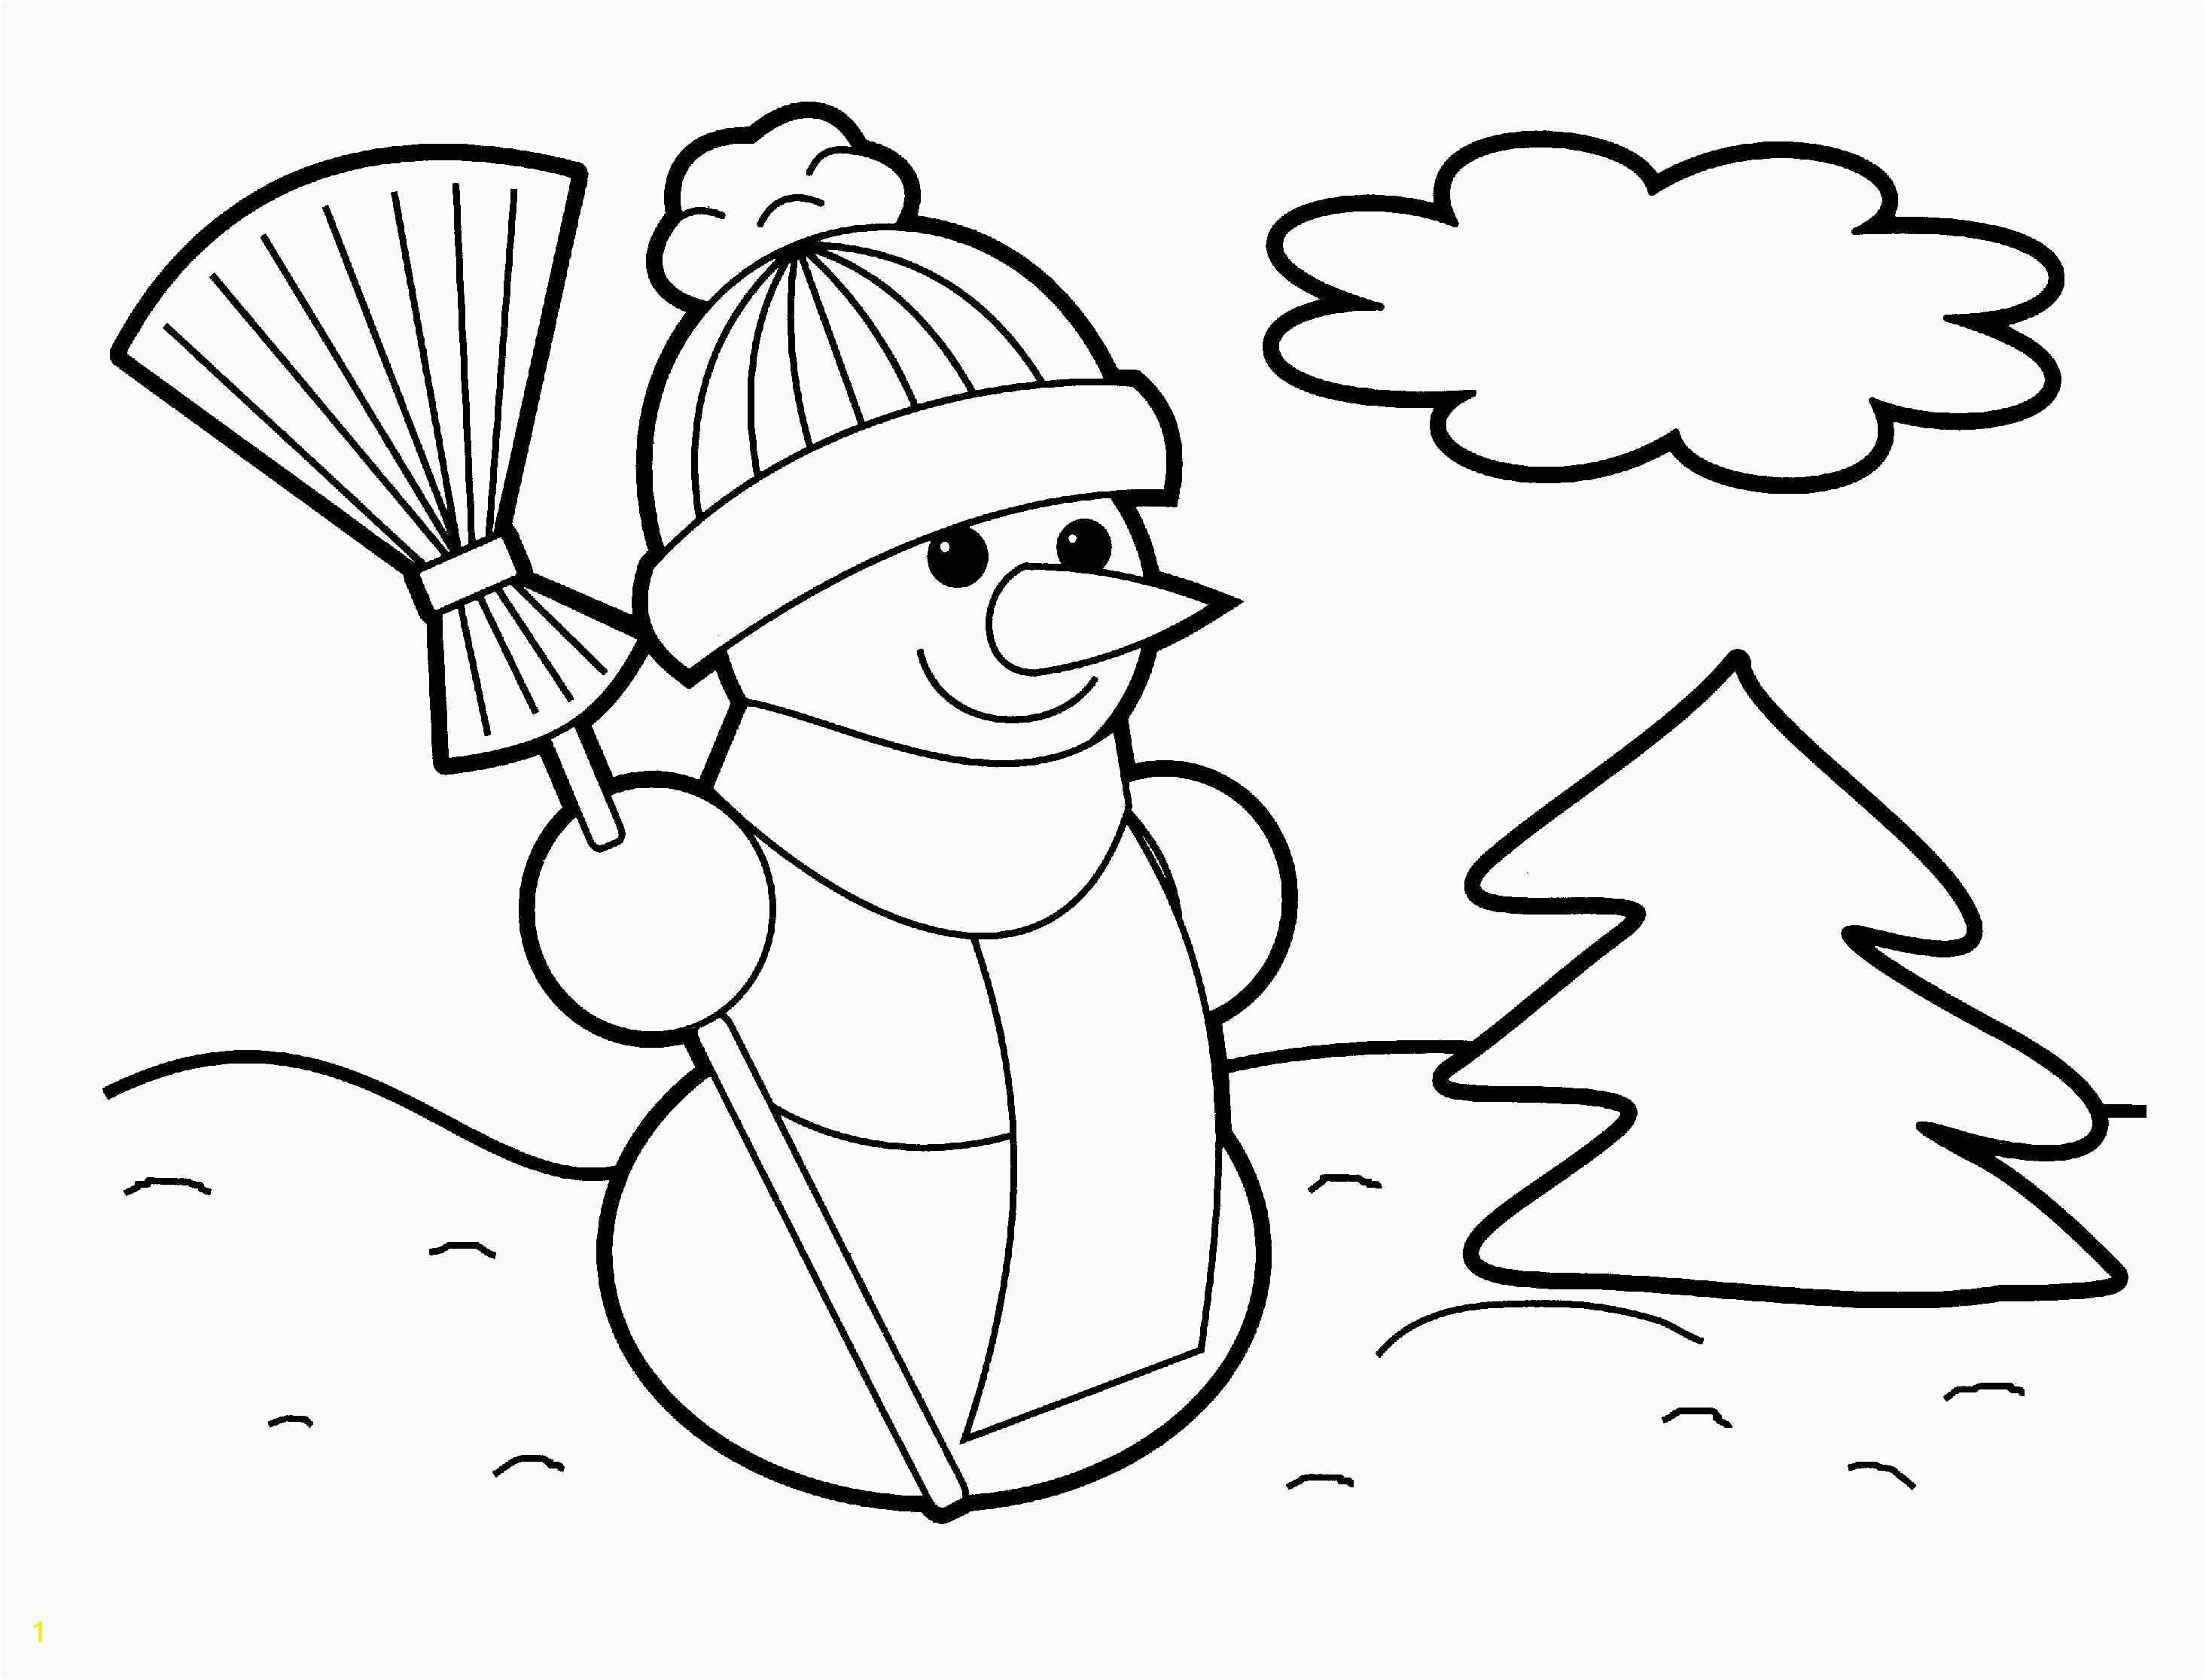 Baby Coloring Pages New Media Cache Ec0 Pinimg originals 2b 06 0d Christmas Wreath by